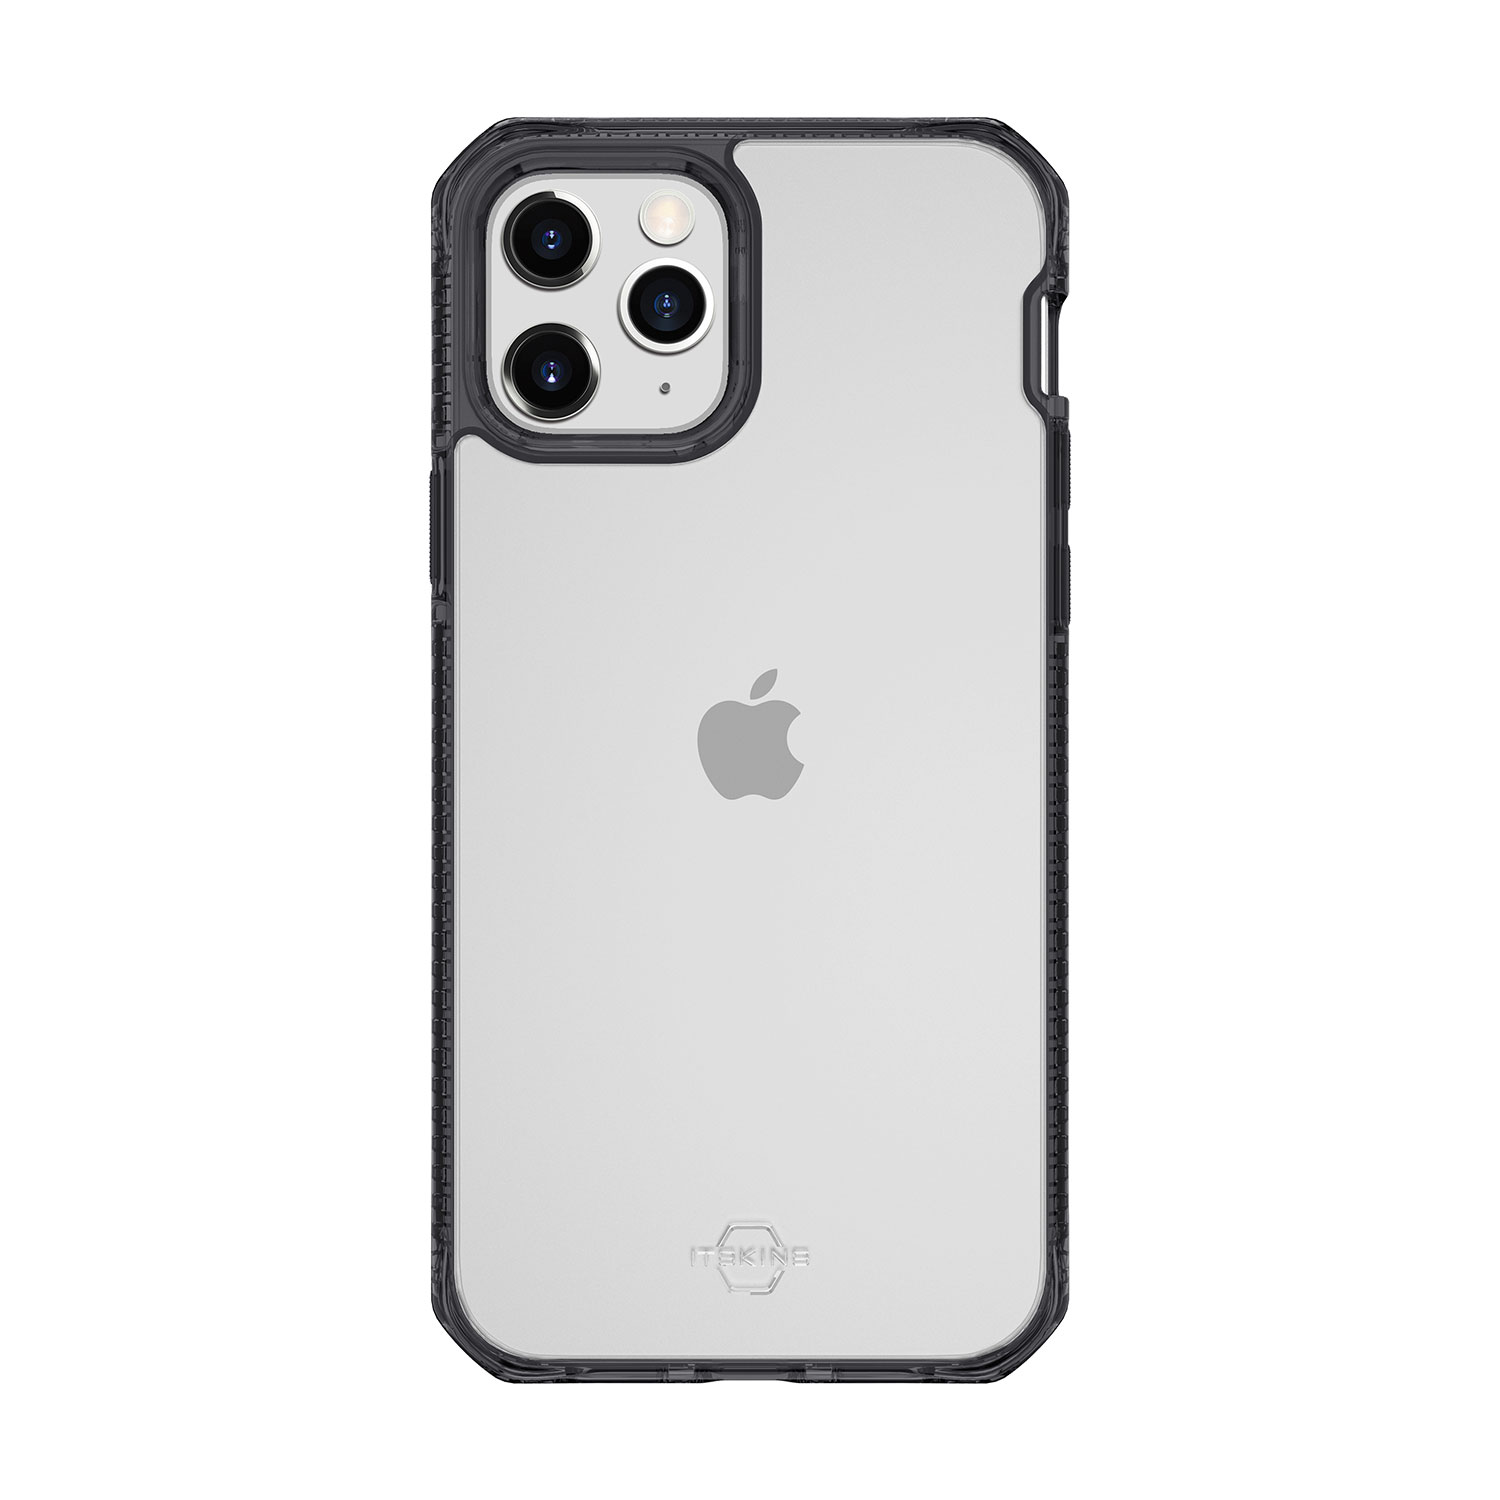 ITSKINS Cover for iPhone 12 and iPhone 12 Pro. Gennemsigtig